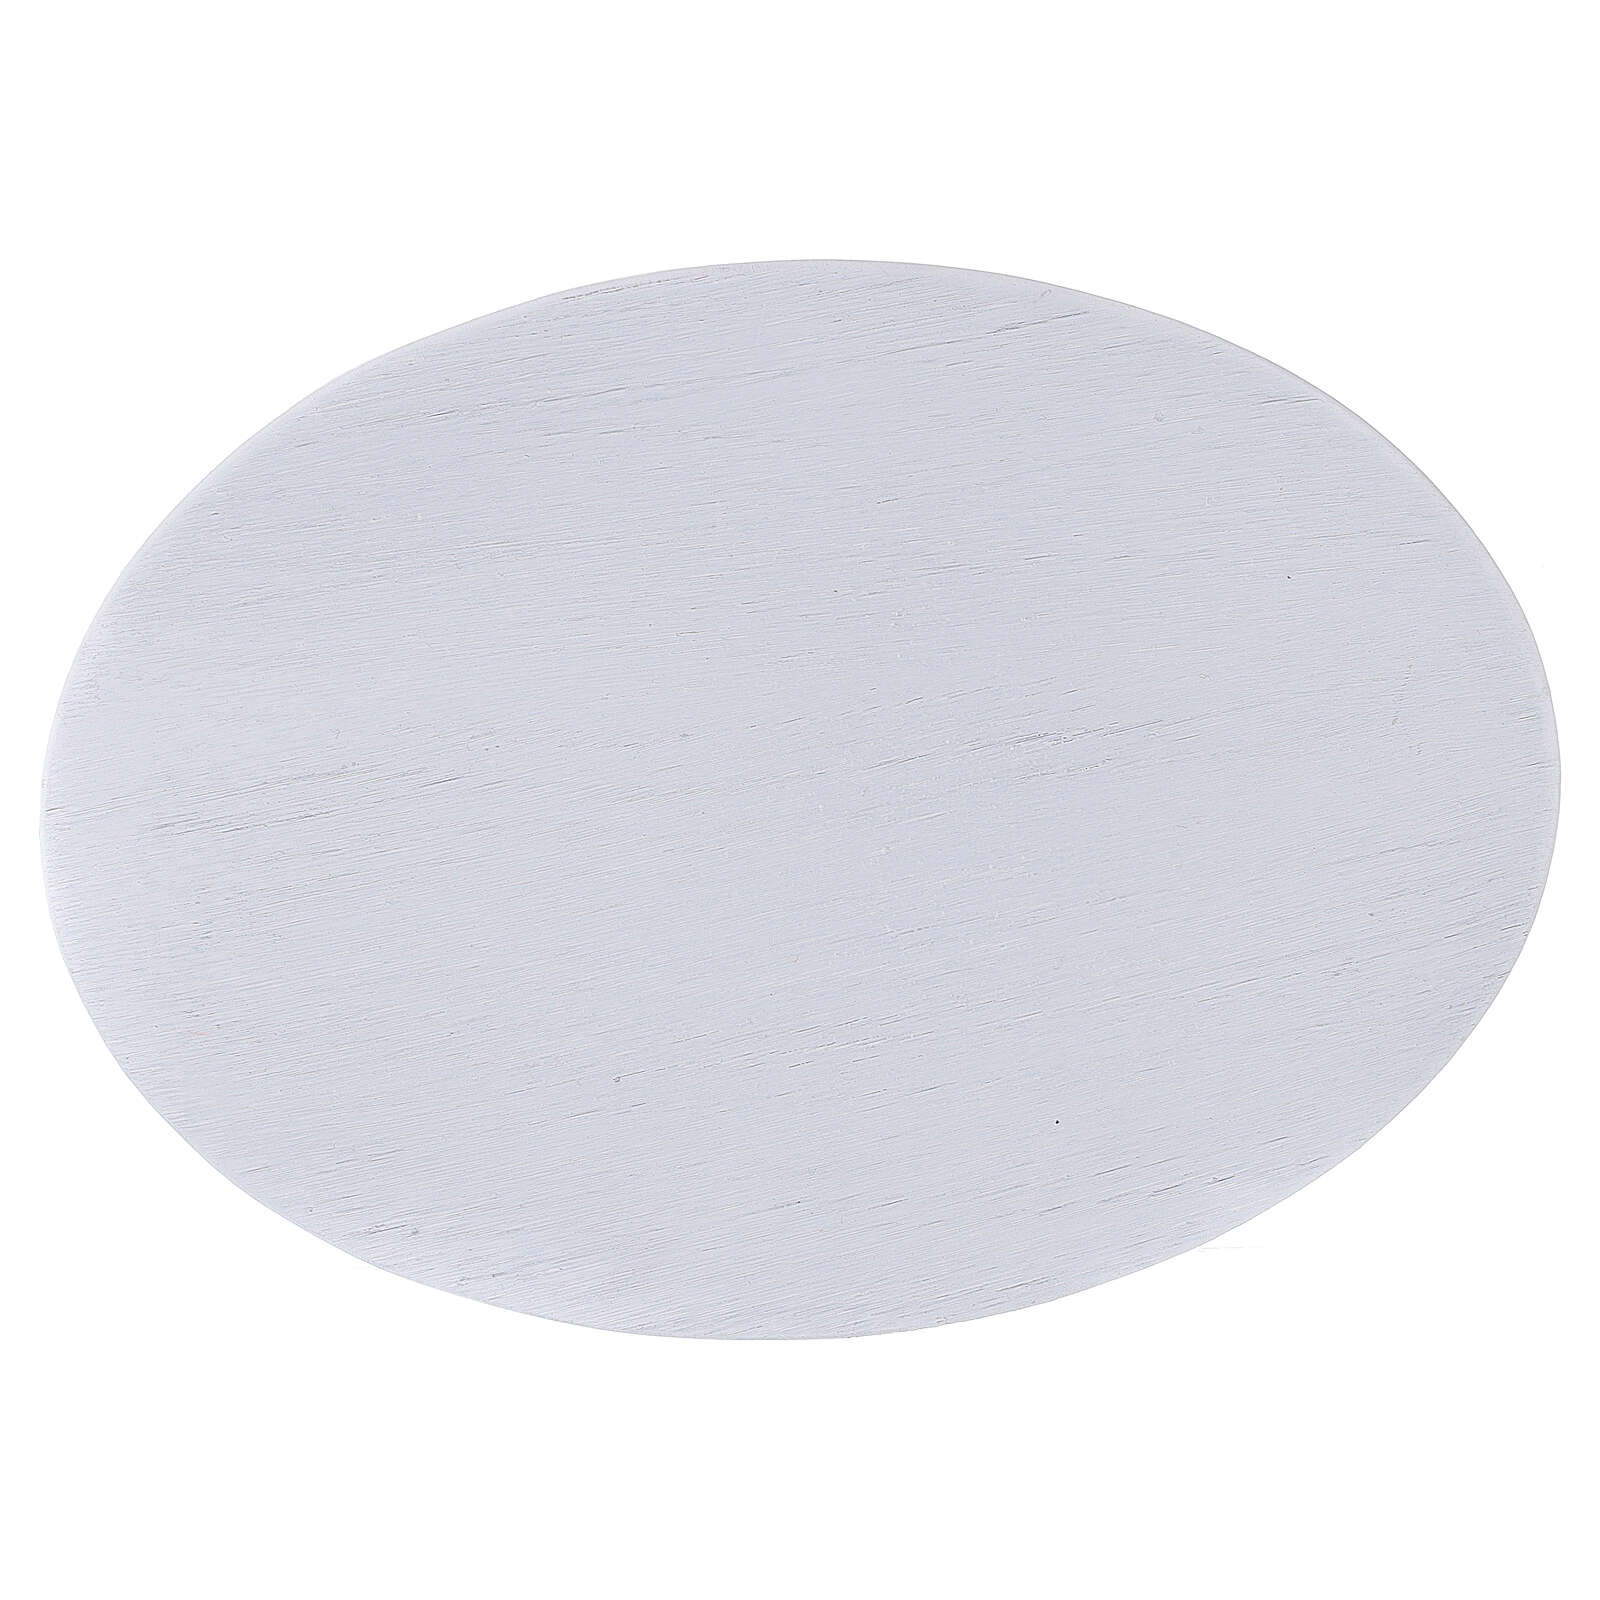 Brushed white aluminium candle holder plate 6 3/4x4 3/4 in 3